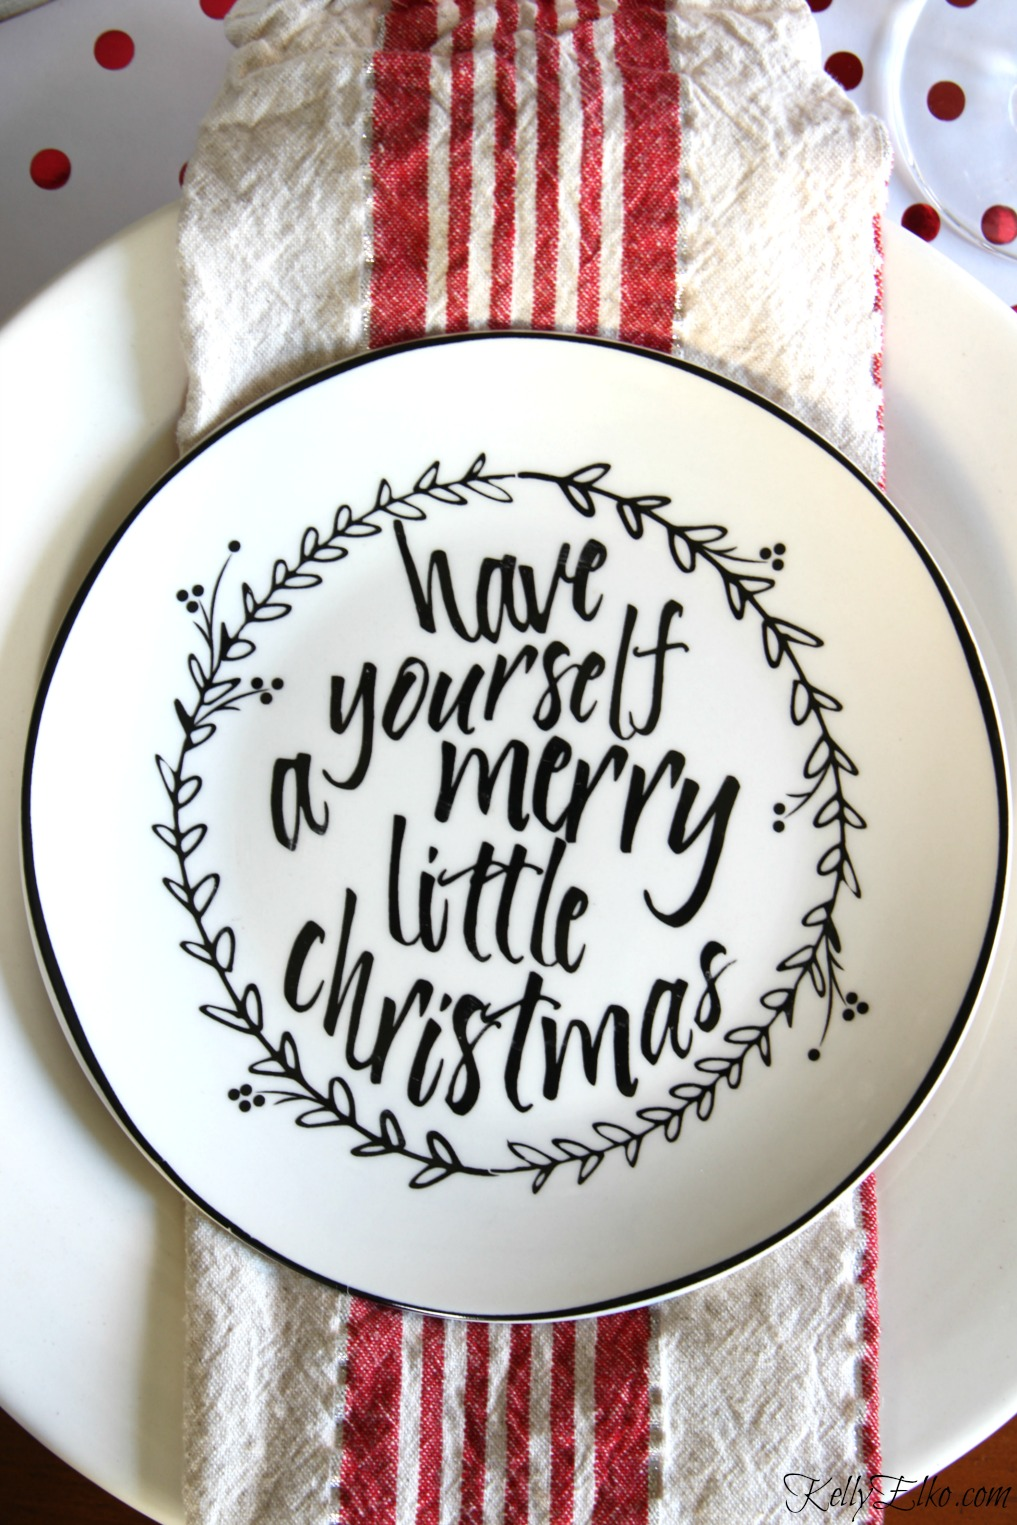 Love these graphic black and white Christmas plates with a different saying on each! kellyelko.com